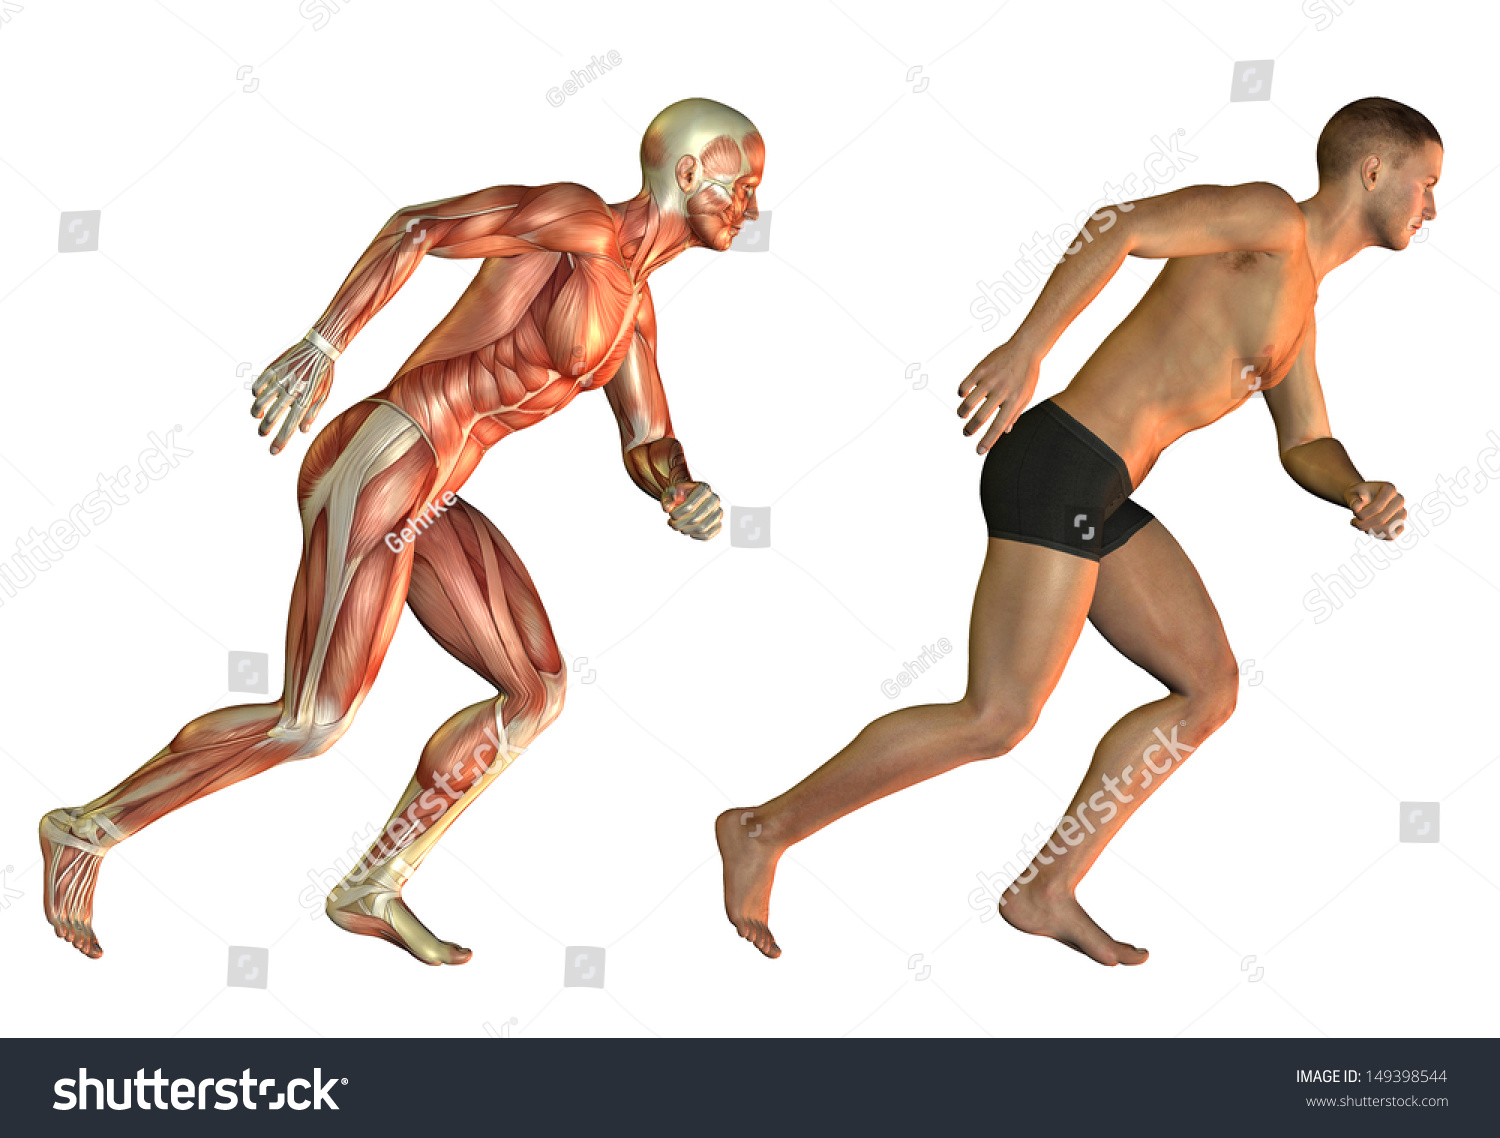 Anatomy Performance Study Man Muscle Structure Stock Illustration